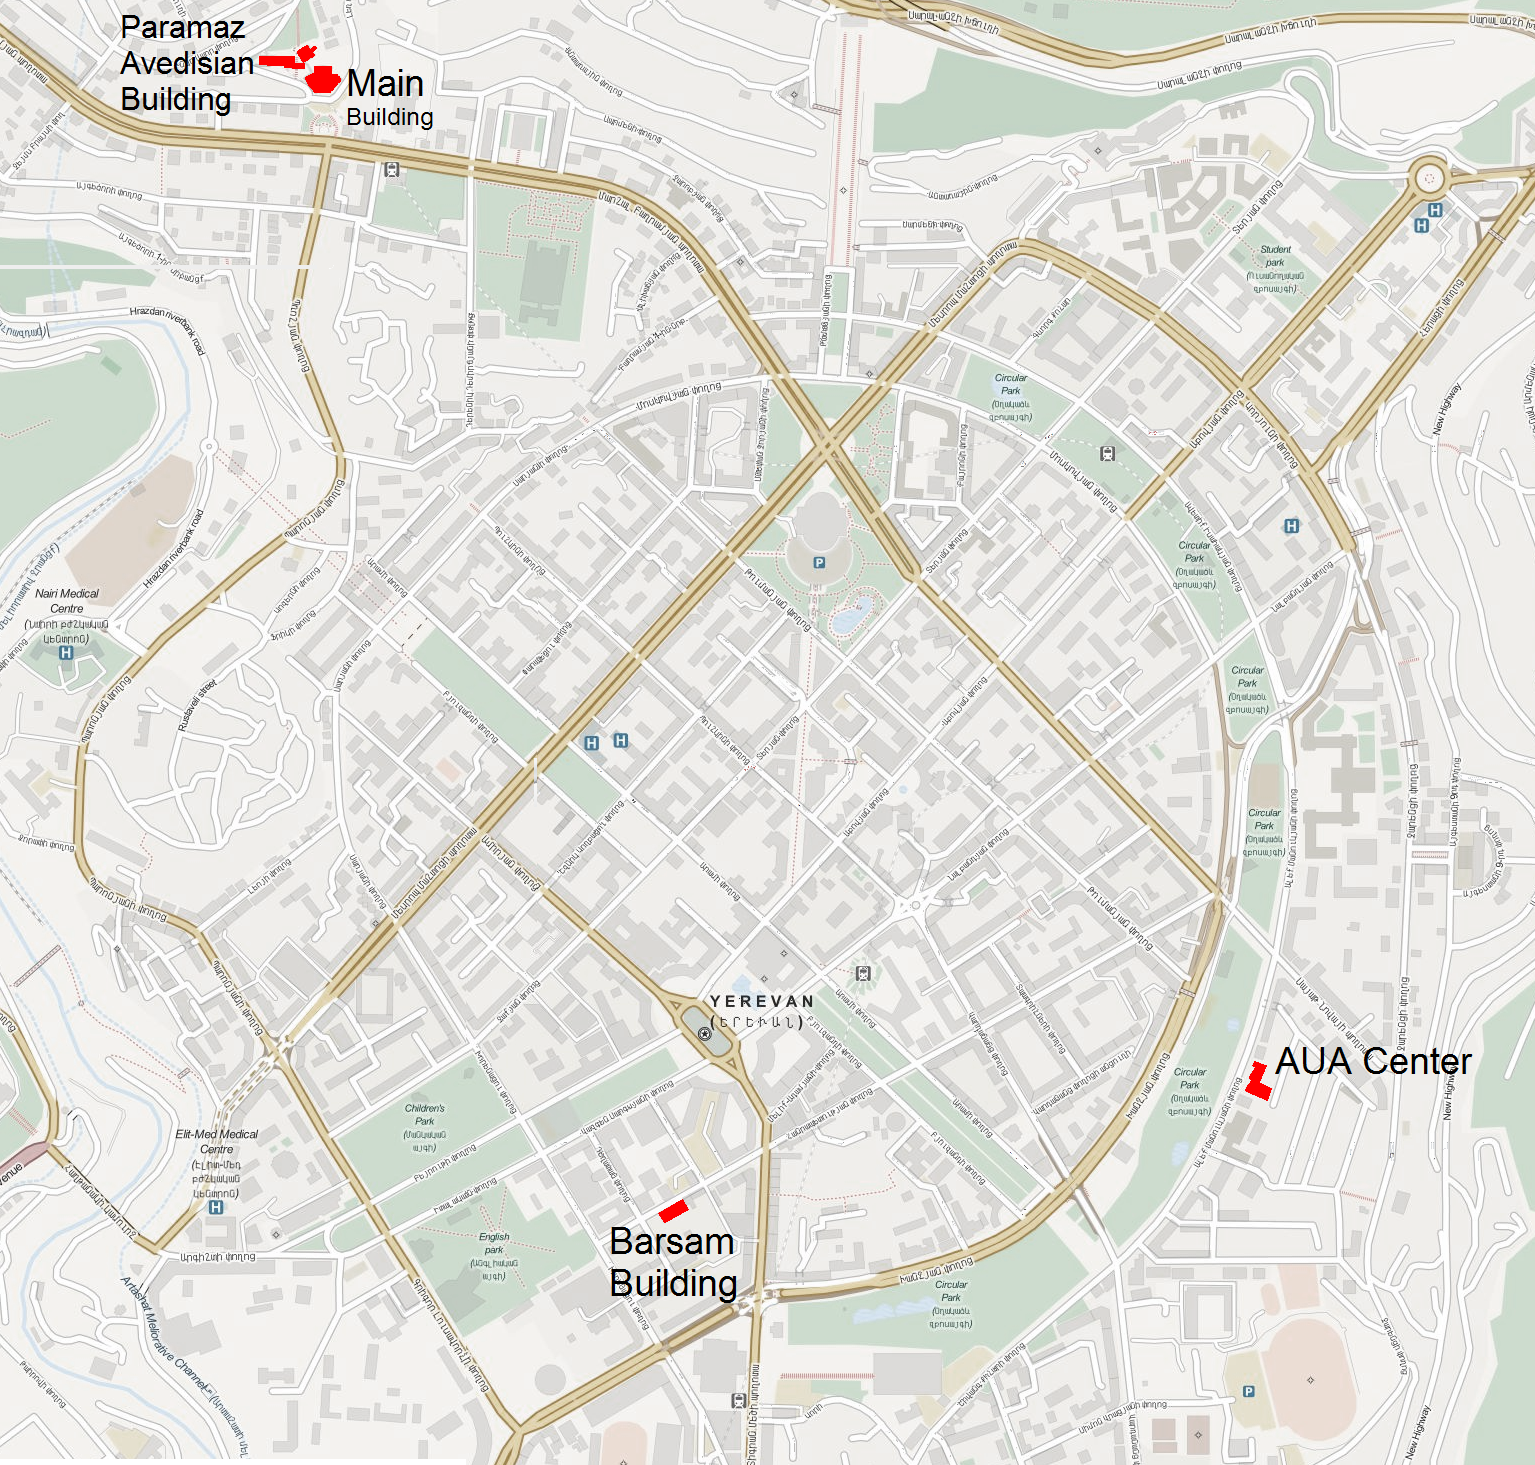 File:American University of Armenia map.png - Wikimedia Commons on map of harvey mudd college, map of regis college, history american university, map of assumption college, map of city college of new york, map of college of the holy cross, map of american association, map of arboretum, map of brevard college, map of american culture, map of wartburg college, map of embry riddle, map of american country, map of saint anselm college, map of valencia college, map of franklin college, map of columbia college, map of lyon college, map of georgetown law school, map of baltimore city community college,